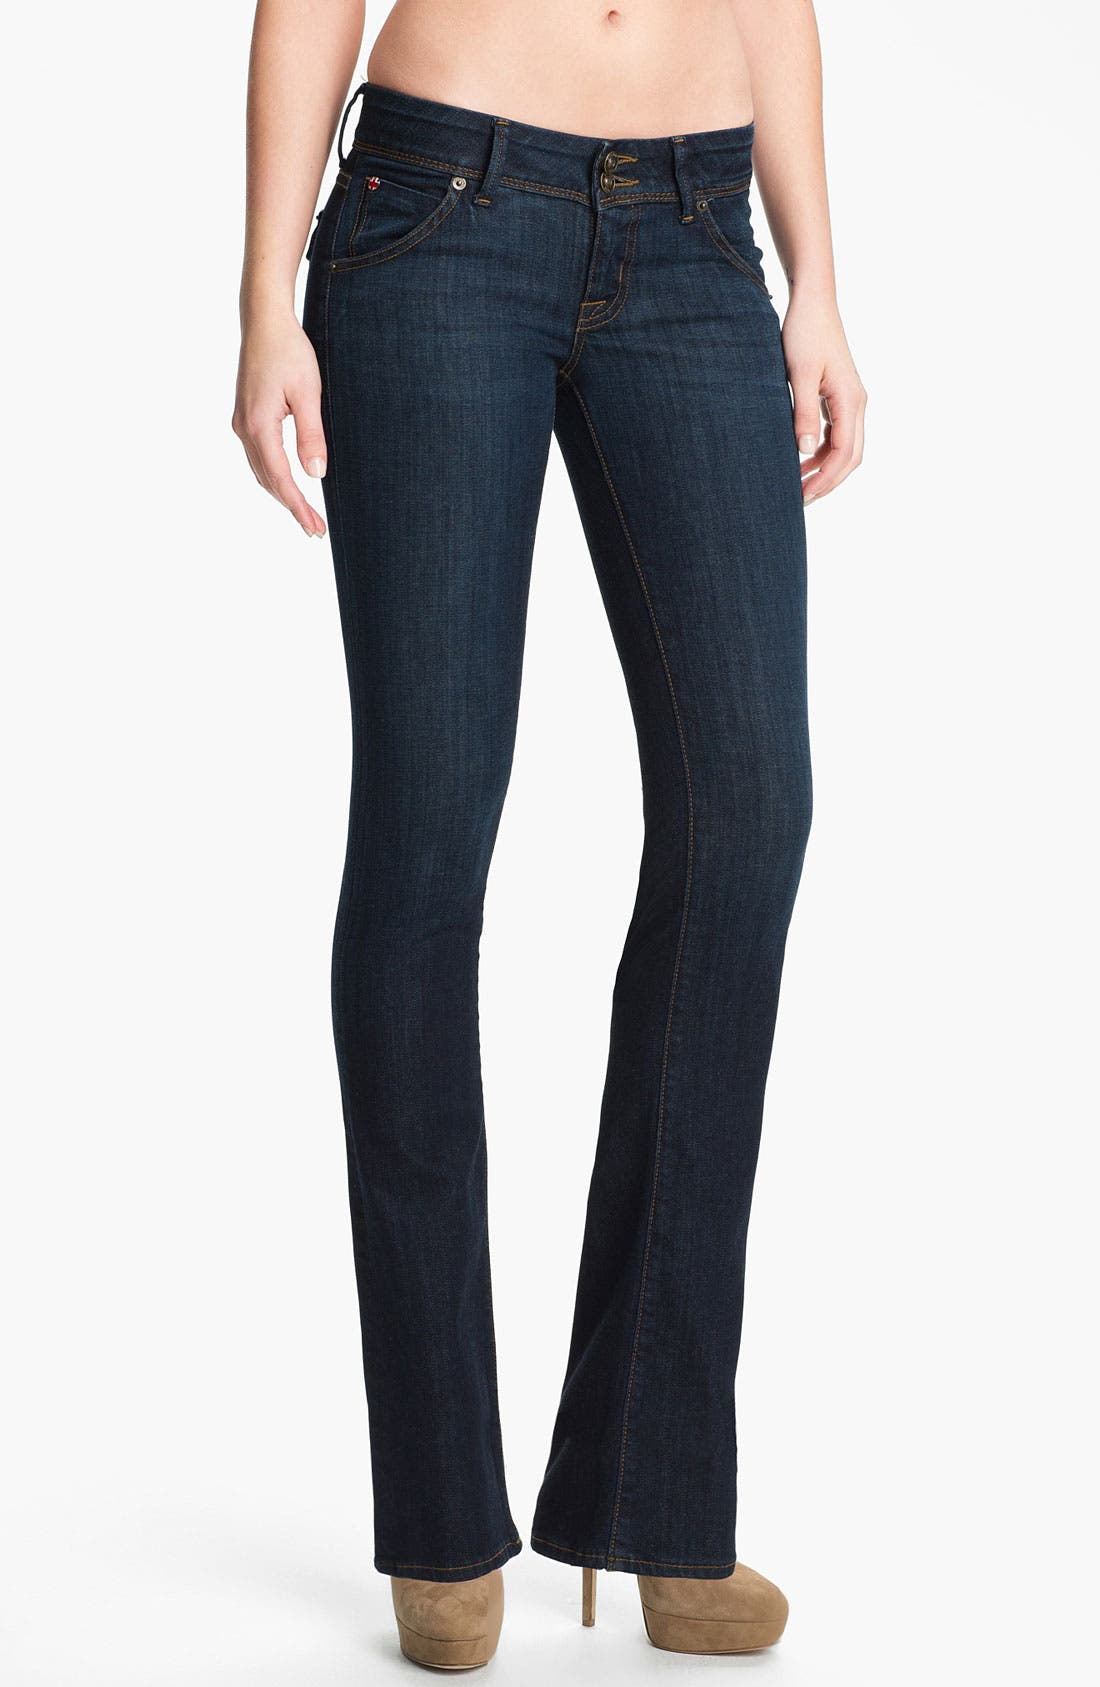 Alternate Image 1 Selected - Hudson Jeans 'Beth' Baby Bootcut Jeans (Rhea)